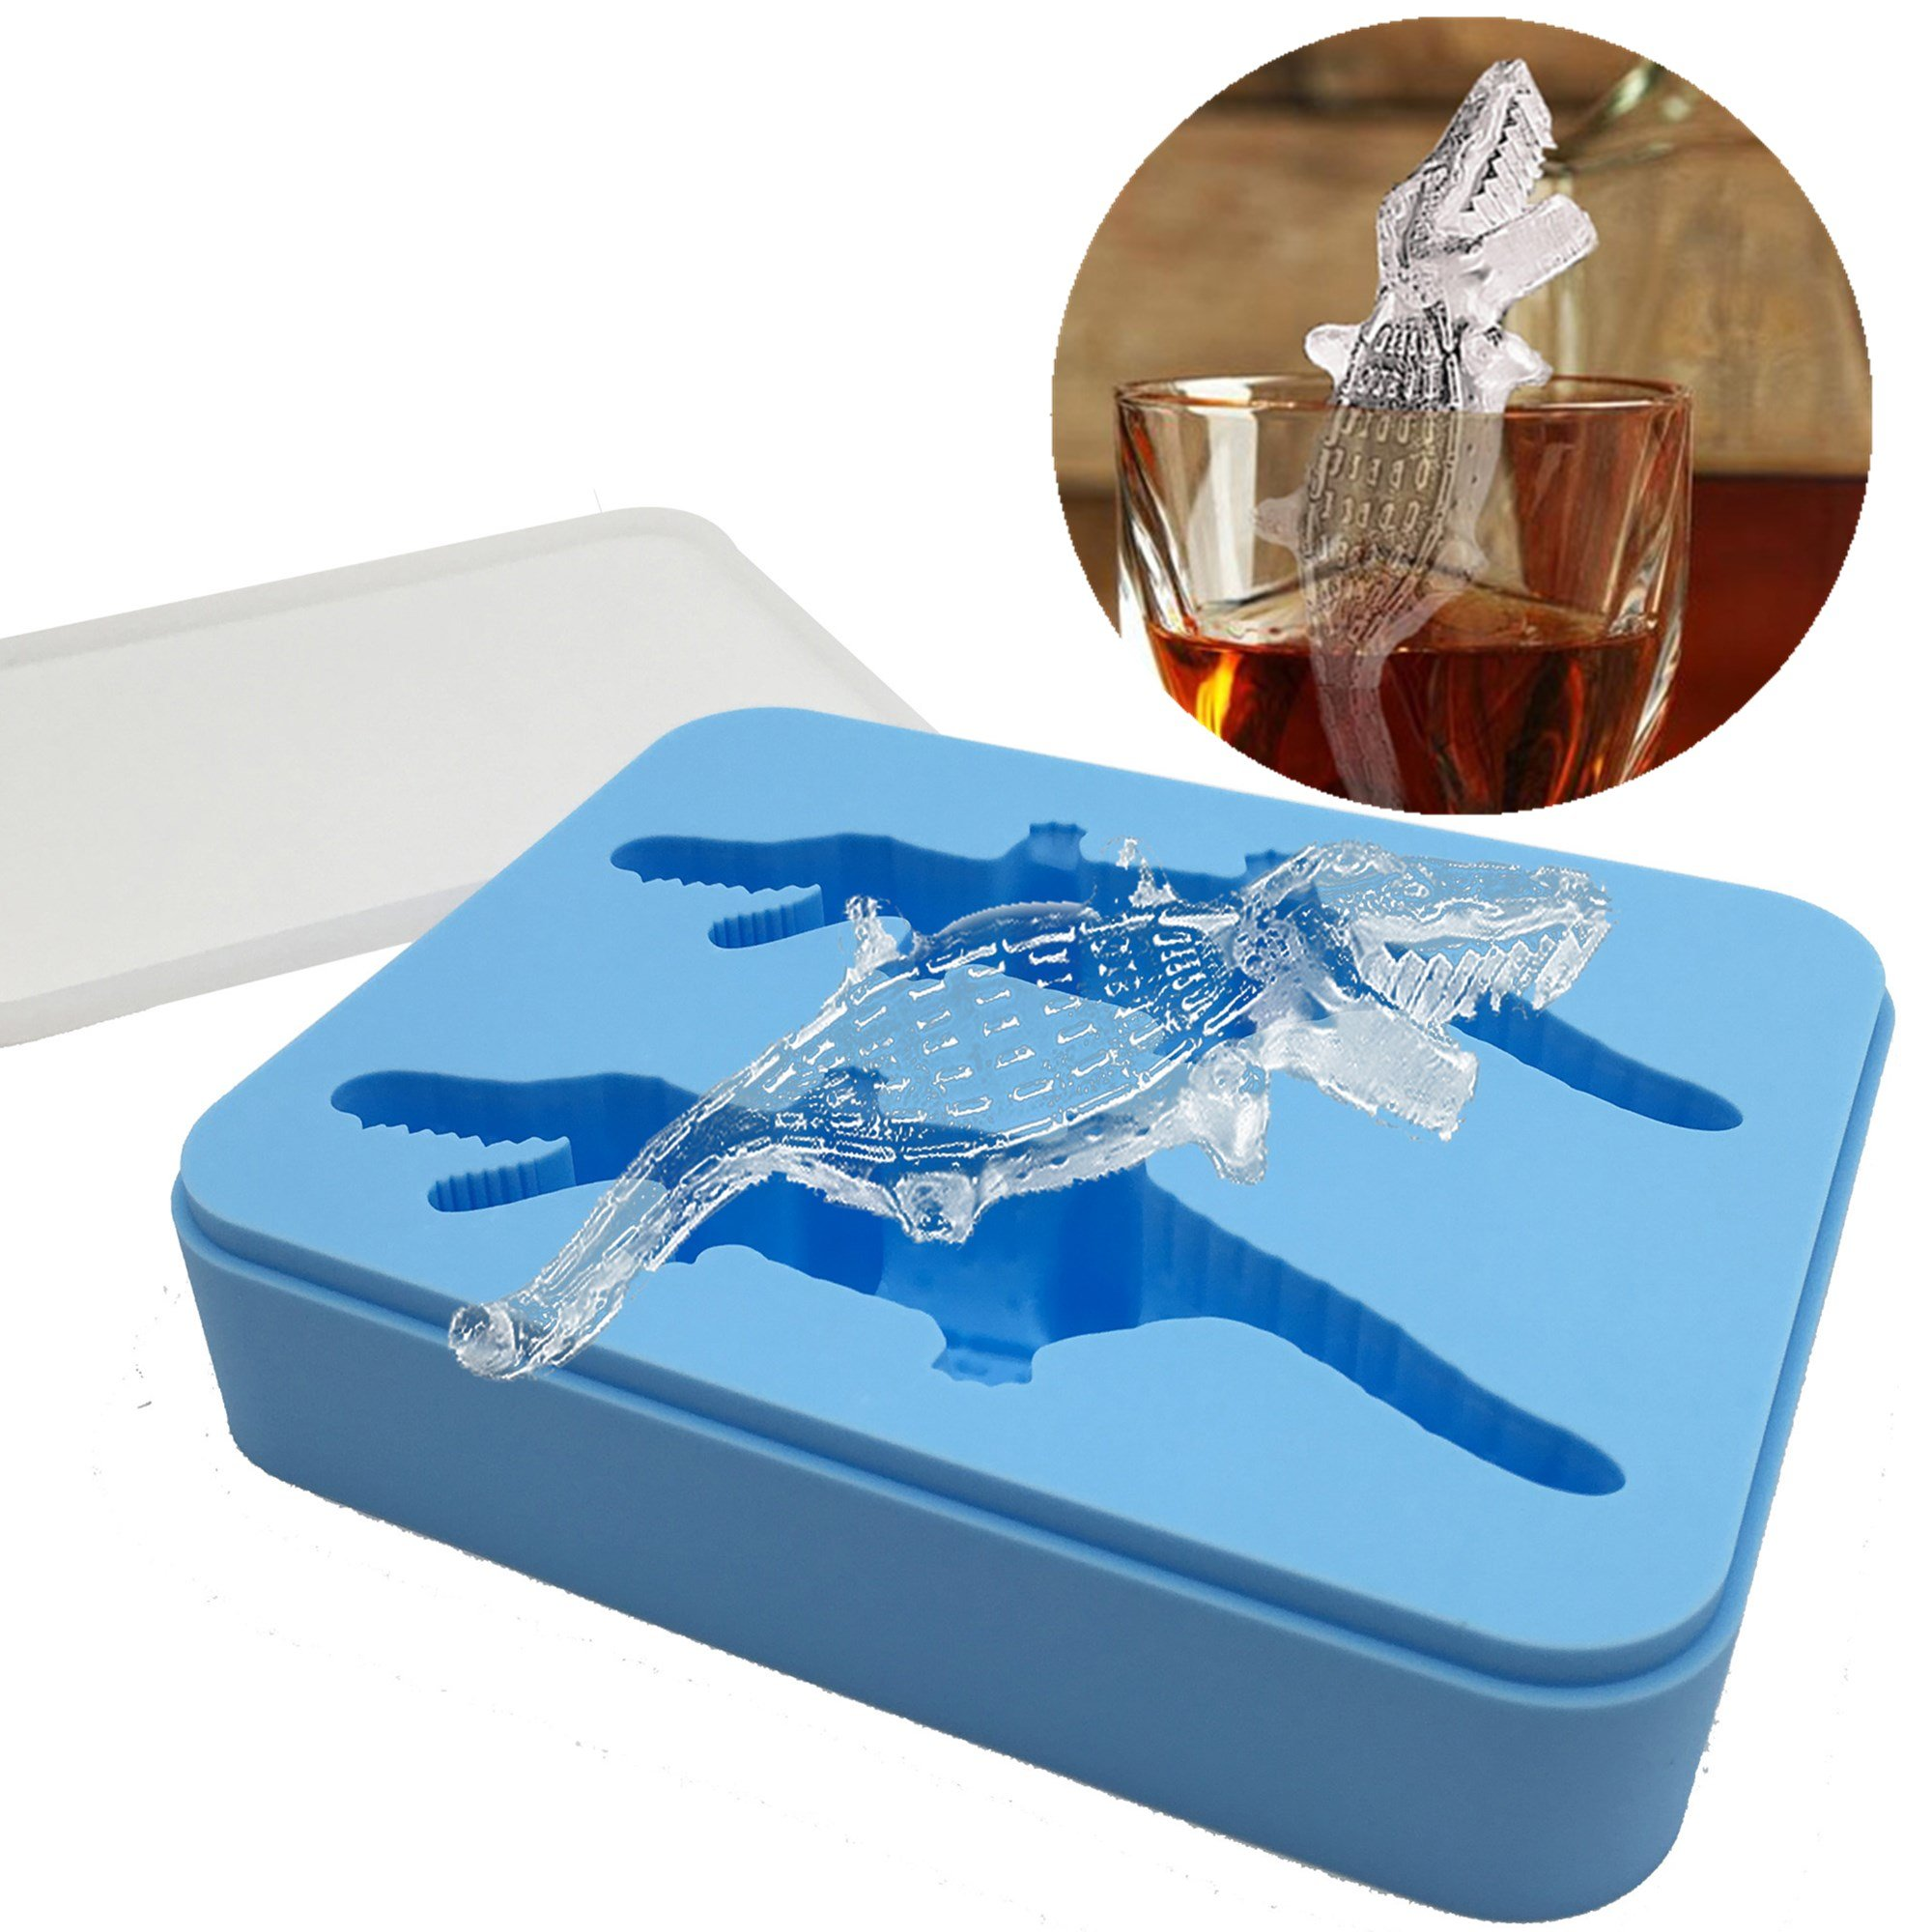 Keypro Crocodile-Shaped Silicone Ice Mold with Lid, Flexible Ice Mold Tray, BPA Free, Makes Slowly-Melted Ice for Cooled Drinks, Ice Mold for Whiskey, Silicone Ice Mold Animals, Tool Gift (Light Blue) by Keypro